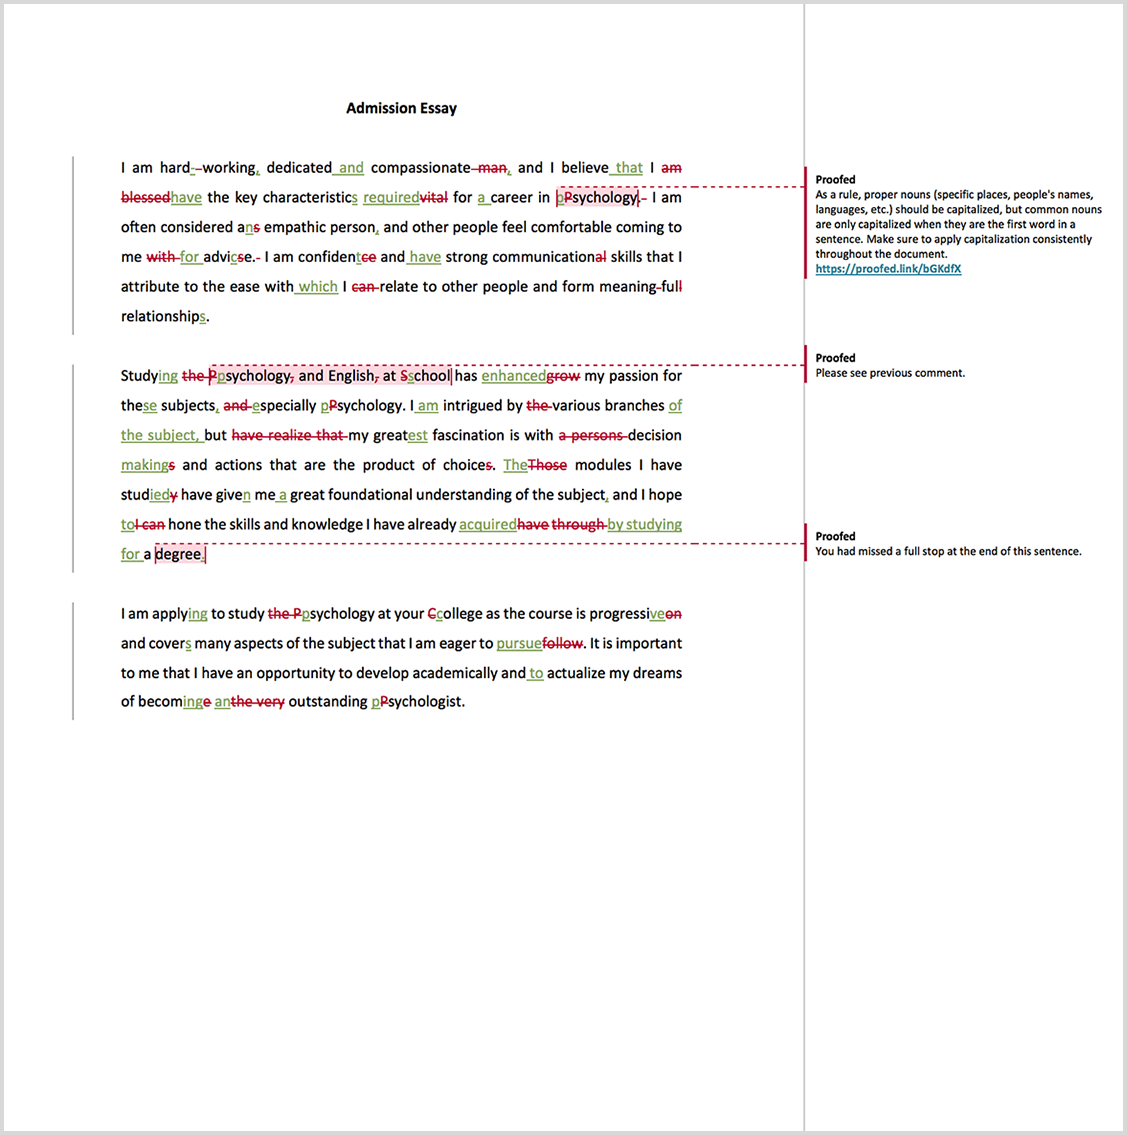 Admission essay proofreading example after editing